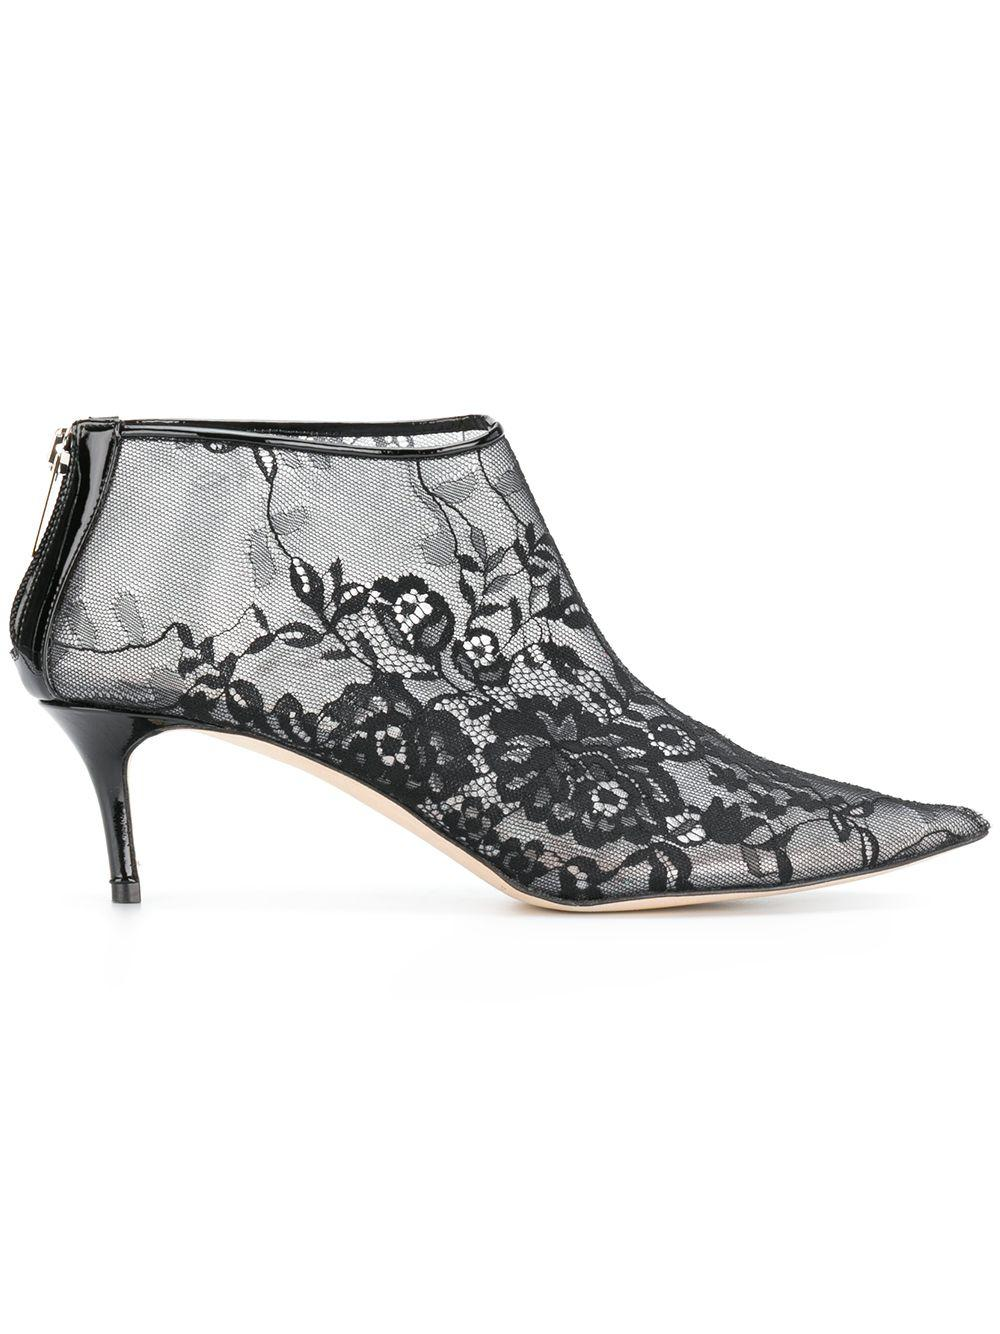 9403d304adf Christopher Kane Plastic Lace Ankle Boot - Black